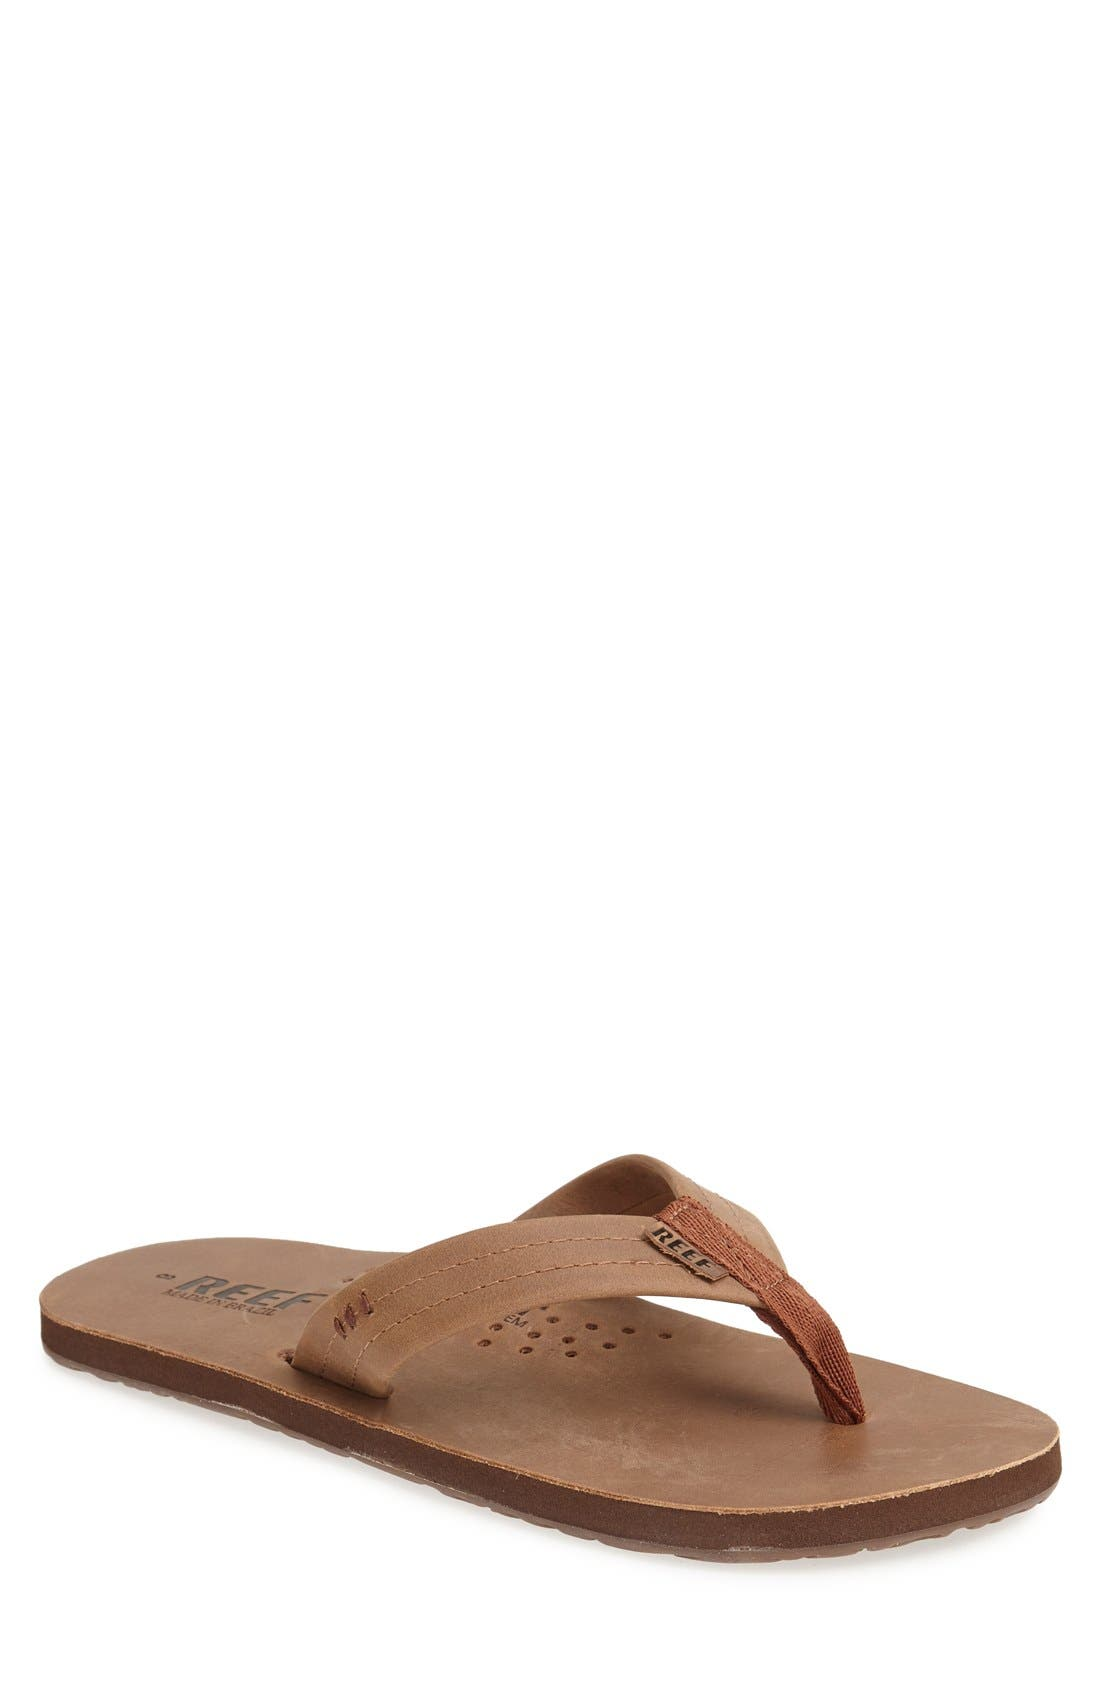 Main Image - Reef 'Draftsmen' Leather Flip Flop (Men)